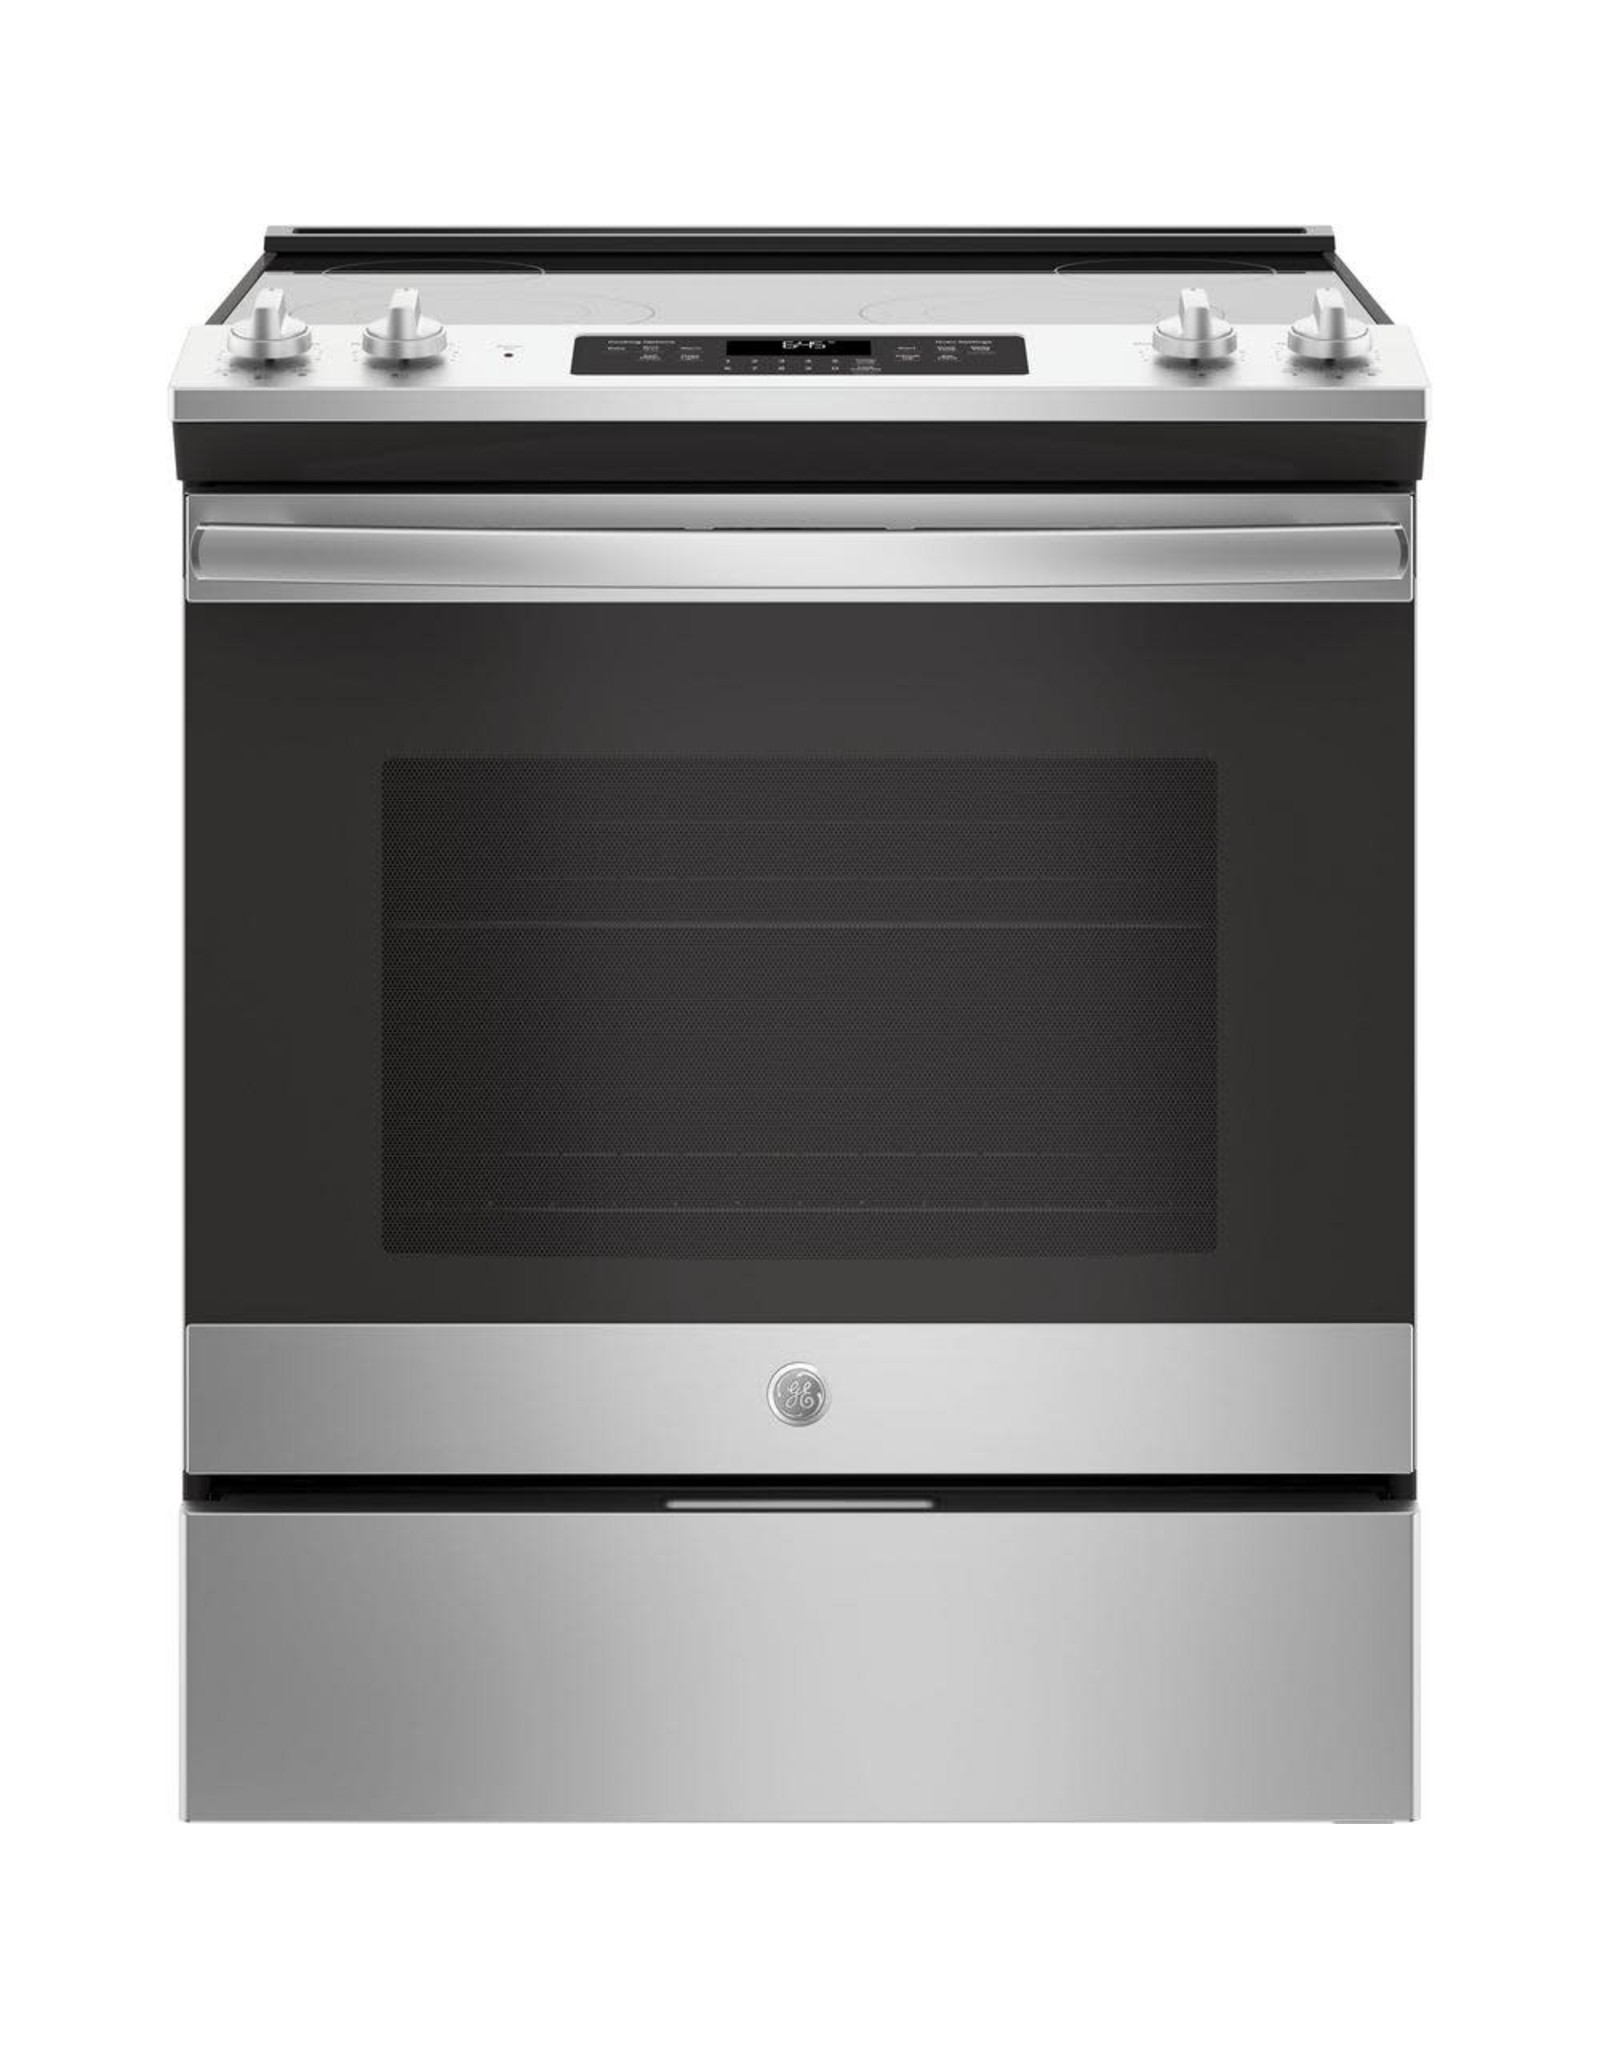 GE GE 30 in. 5.3 cu. ft. Slide-In Electric Range with Self-Cleaning Oven in Stainless Steel